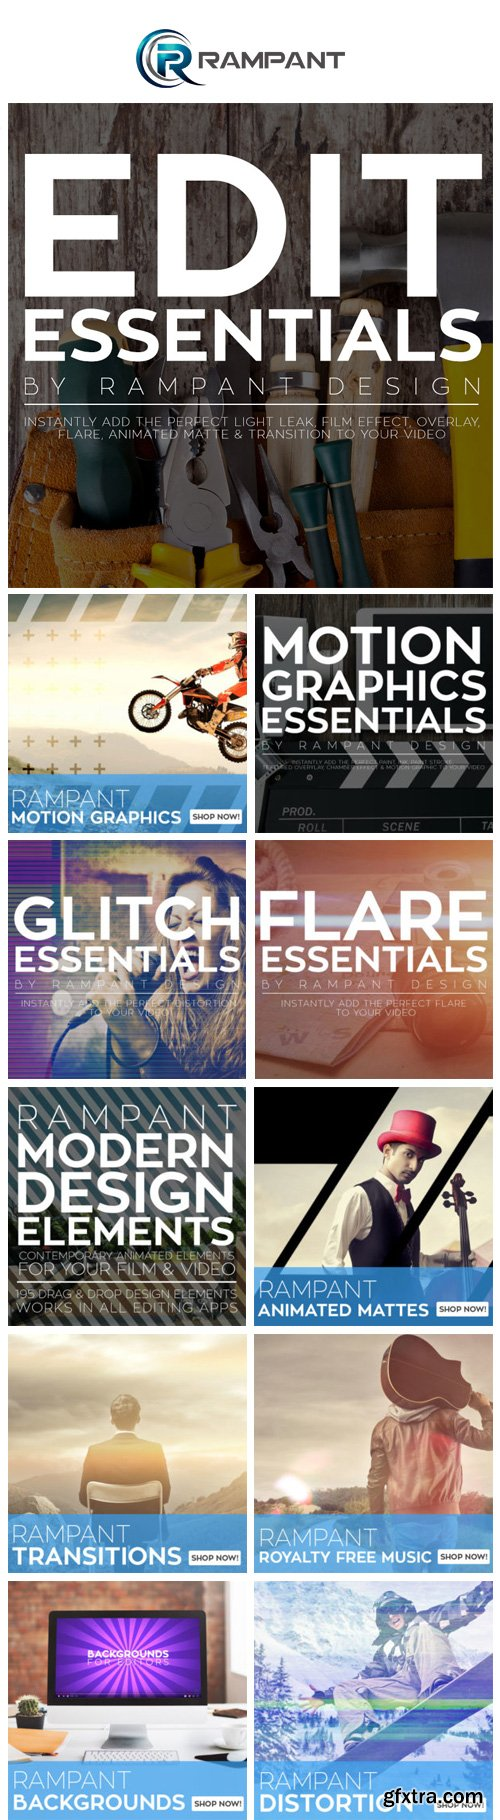 Rampant Design Tools Full Collections